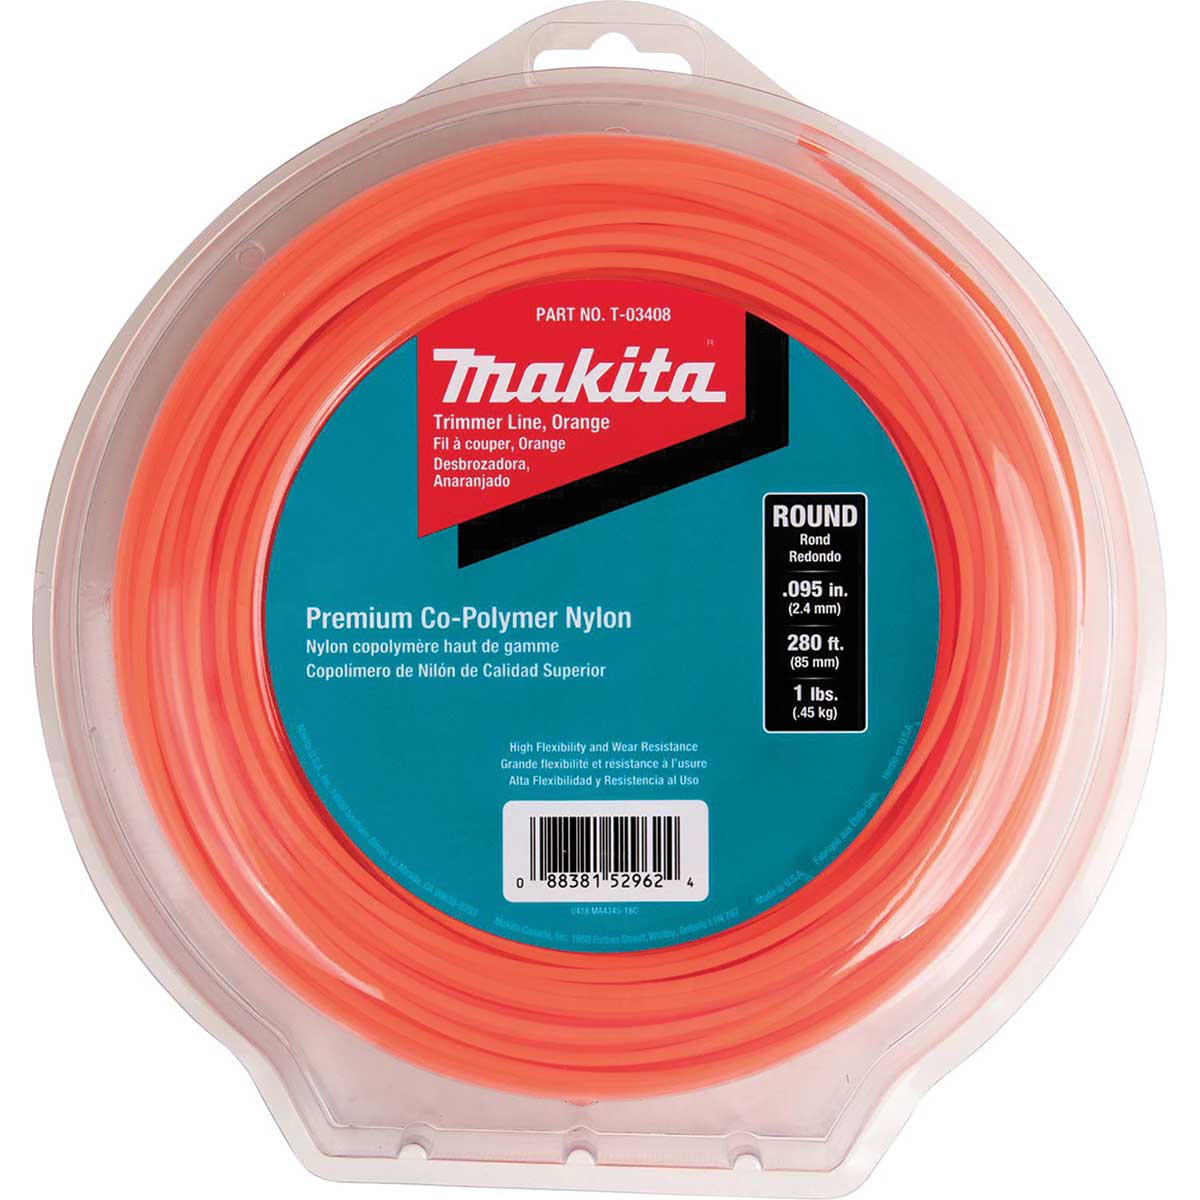 "Makita T-03408 Round Trimmer Line, 0.095"", Orange, 280 ft, 1 lbs."